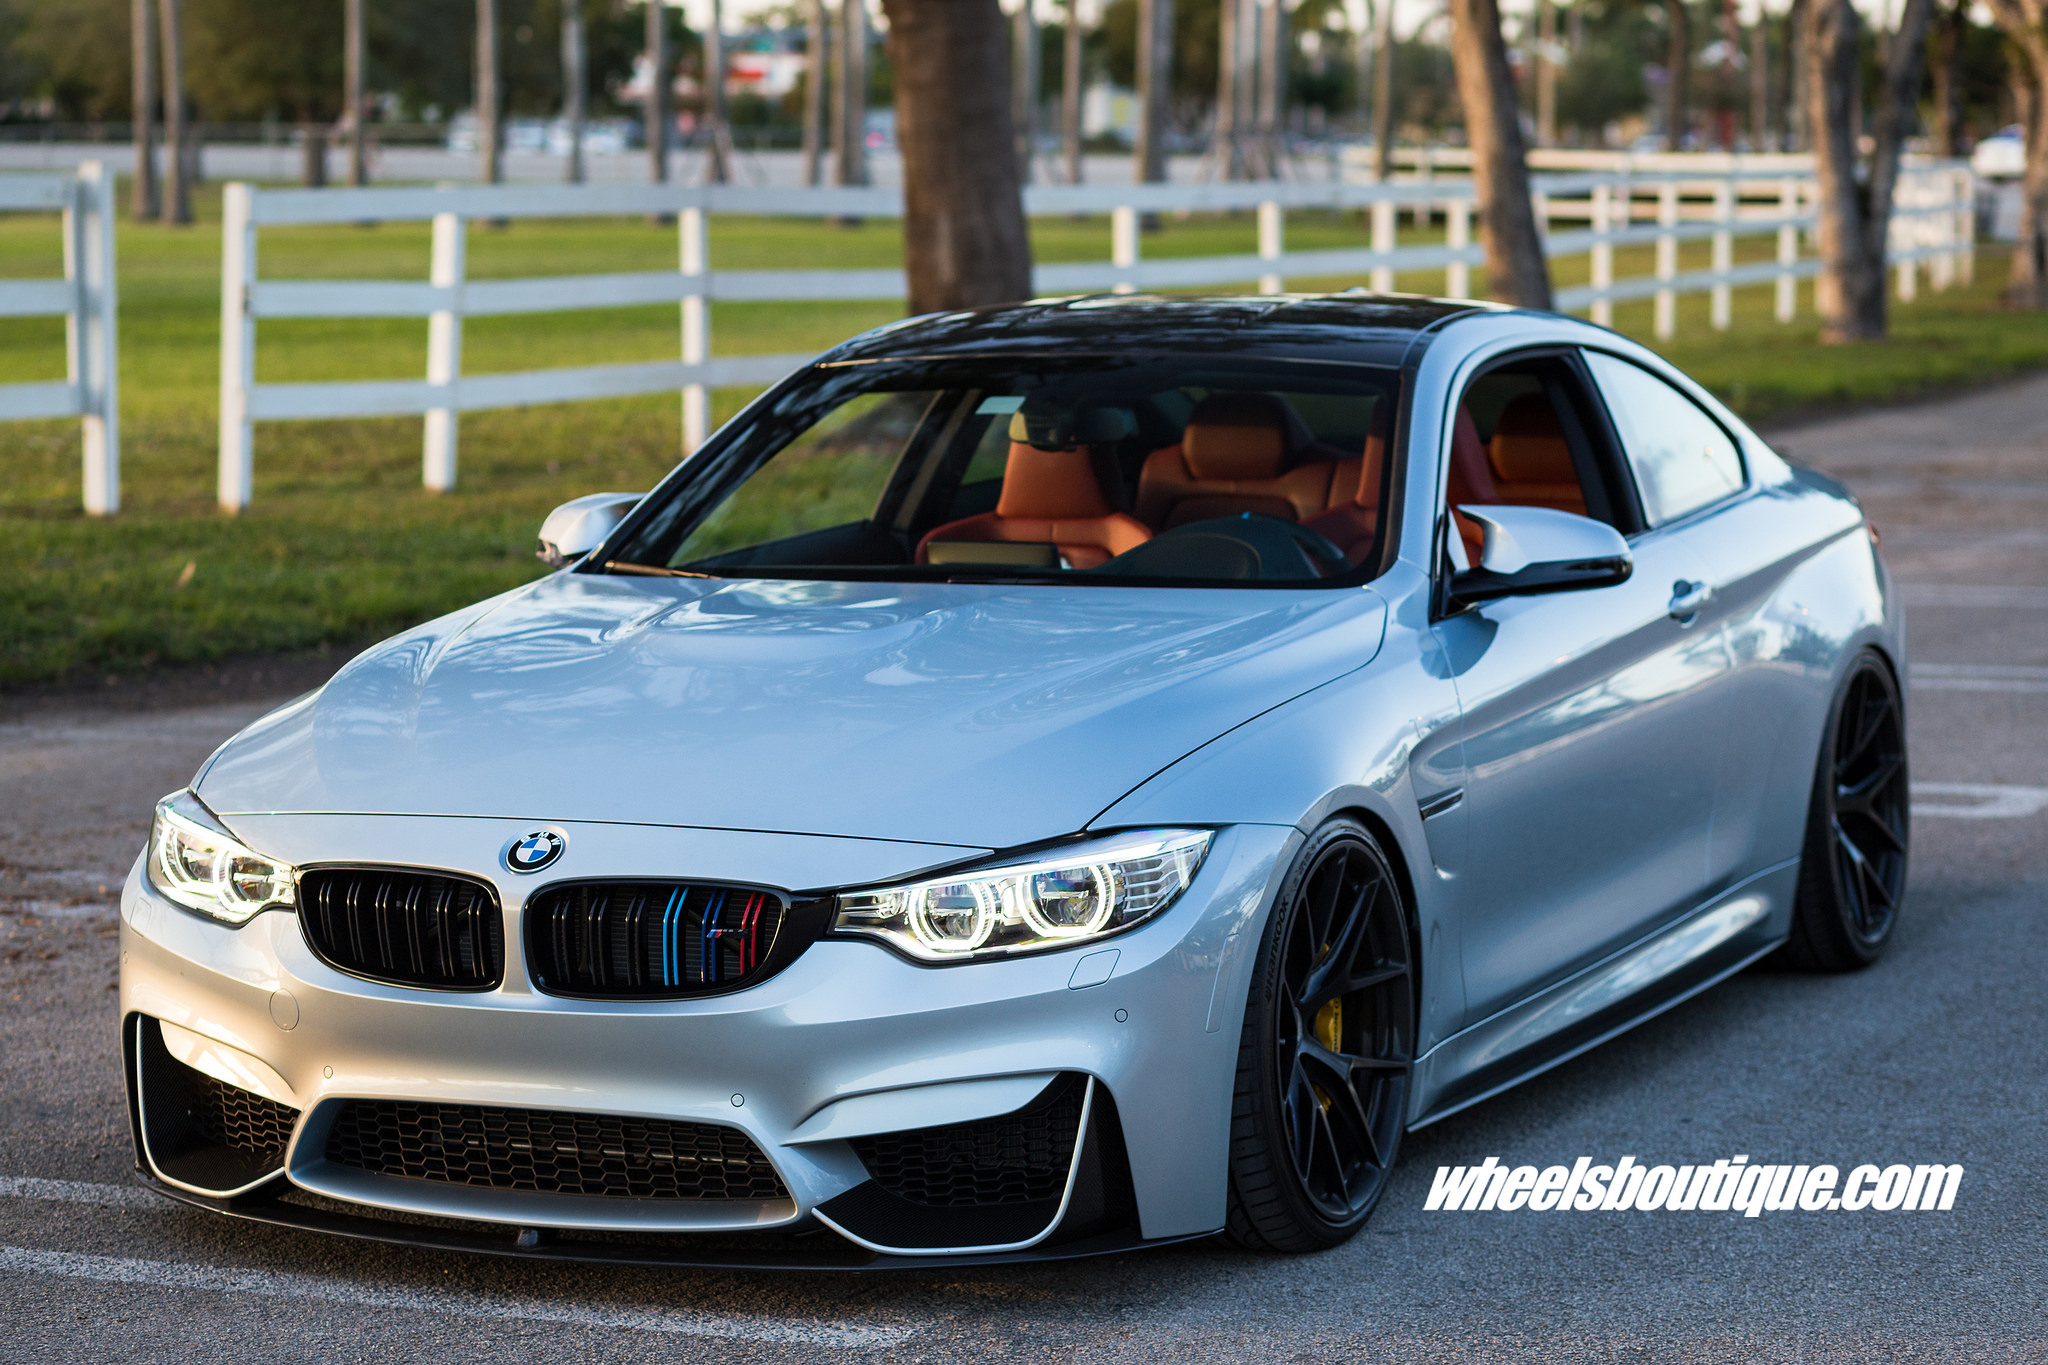 F82 BMW M4 Sits on HRE Wheels, Customizations by Wheels ...